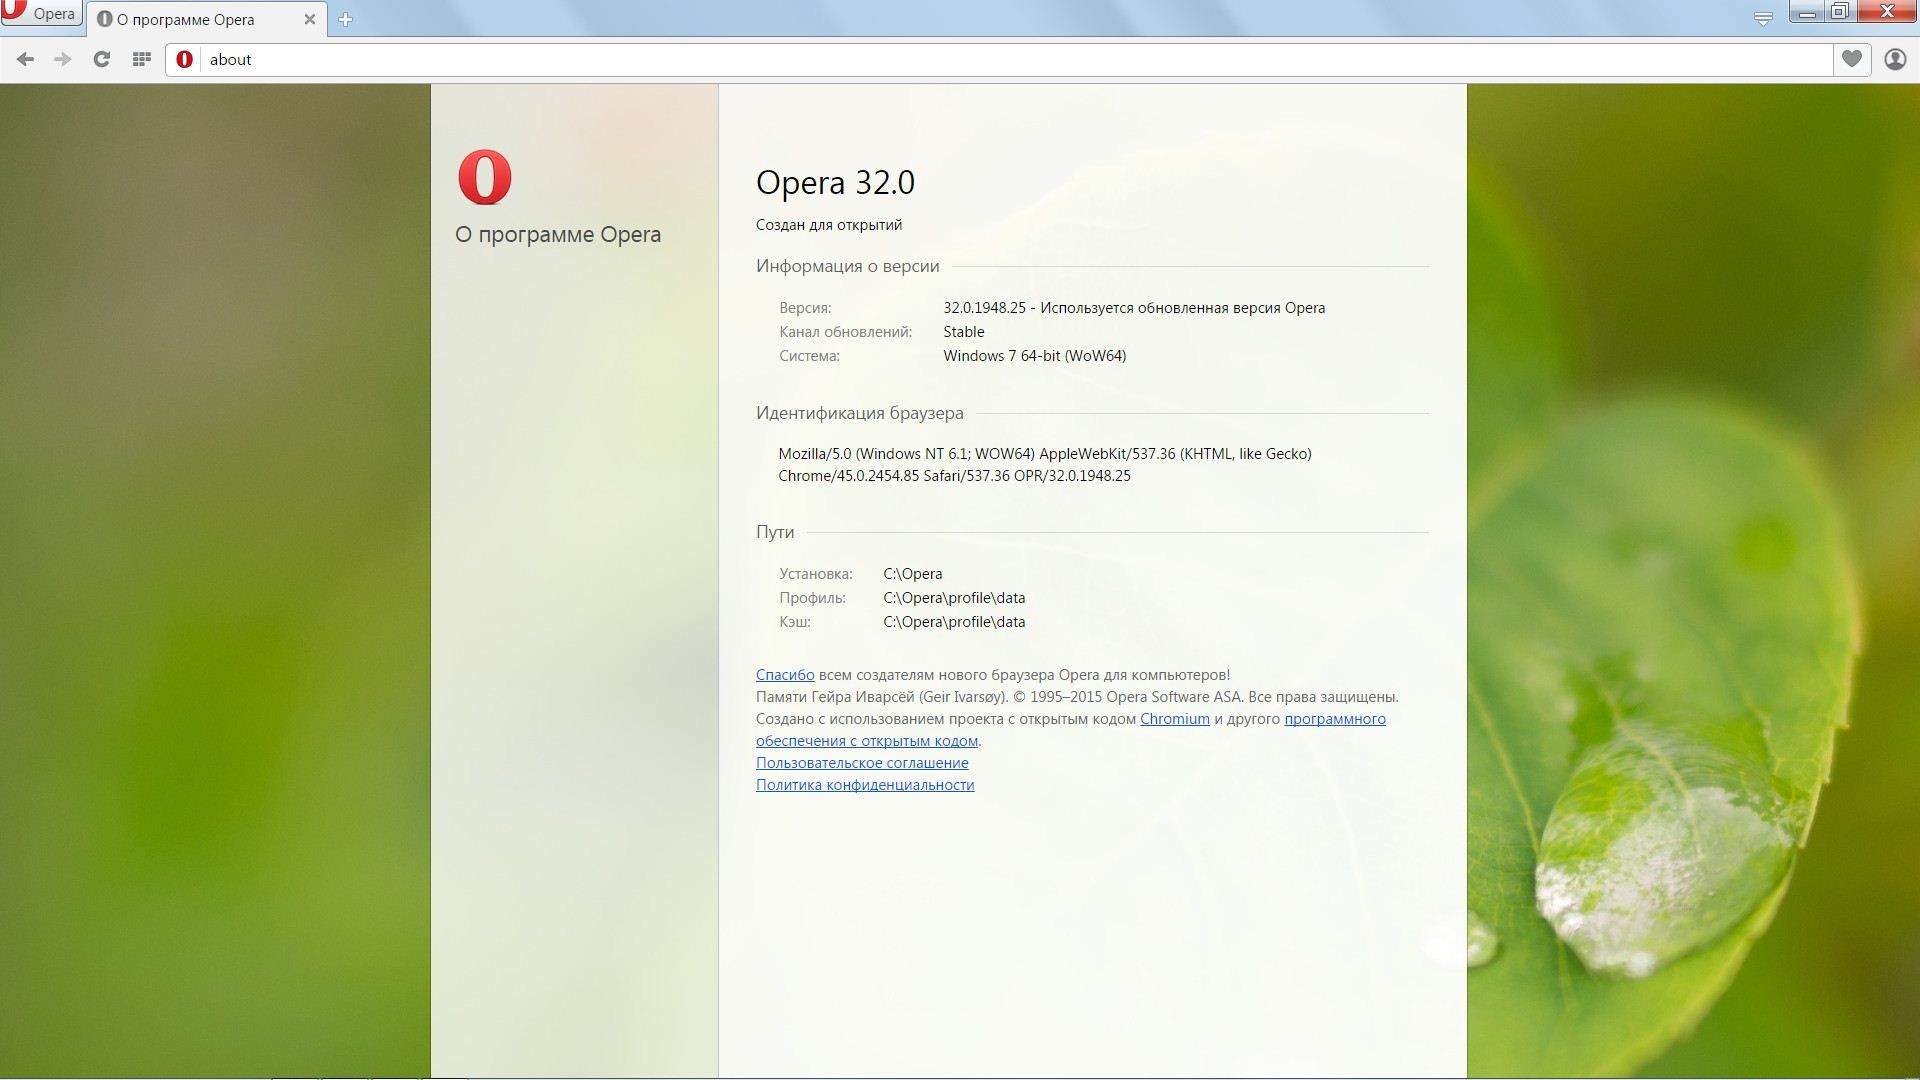 OPERA 36.0 BUILD 2130.32 STABLE REPACK/PORTABLE BY D AKOV СКАЧАТЬ БЕСПЛАТНО